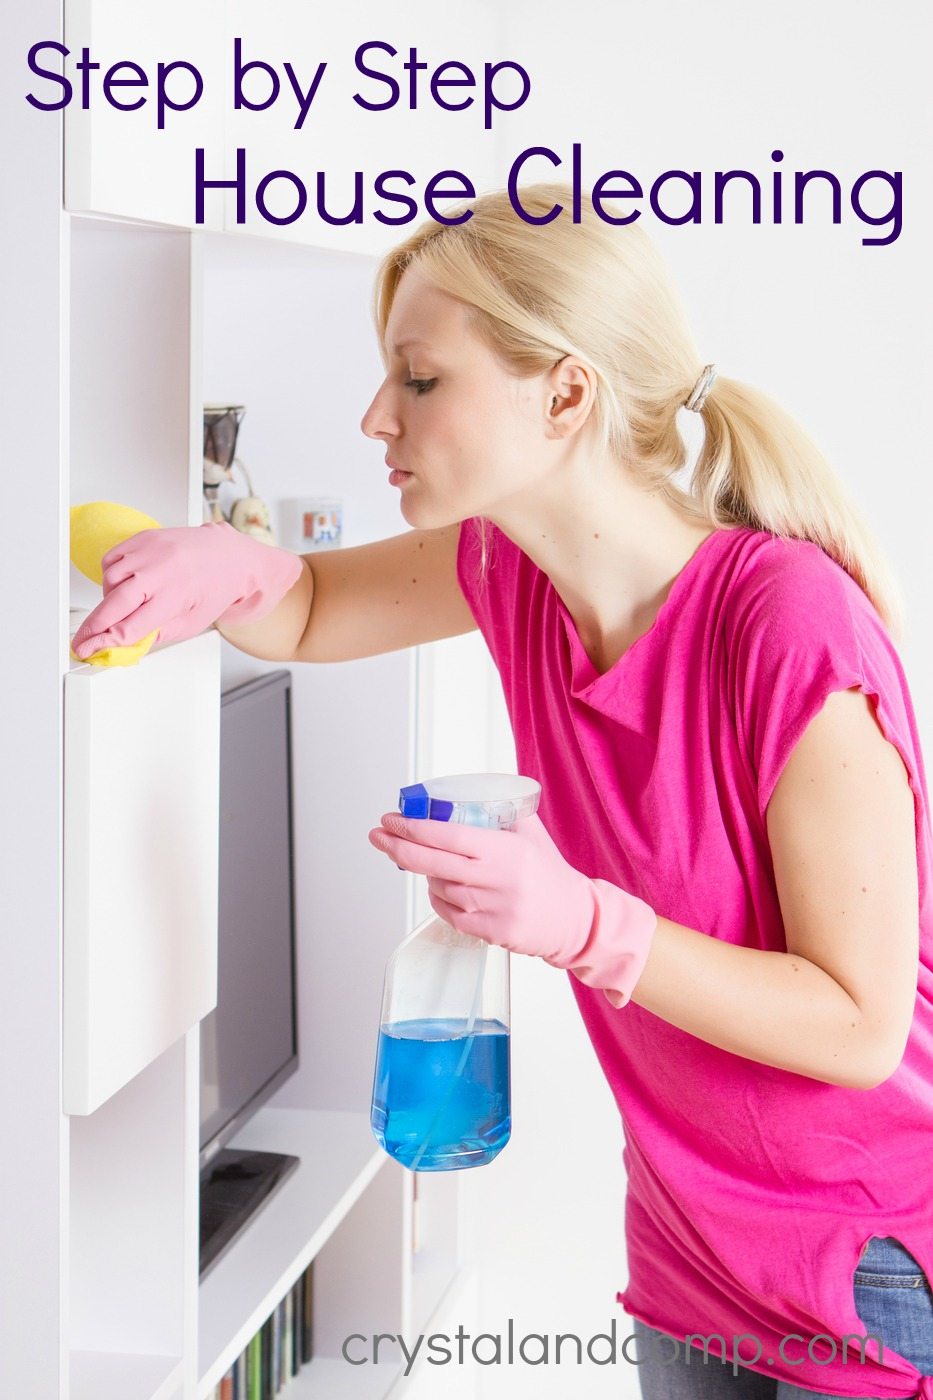 Cleaning house step by step cleaning house for Building a home step by step